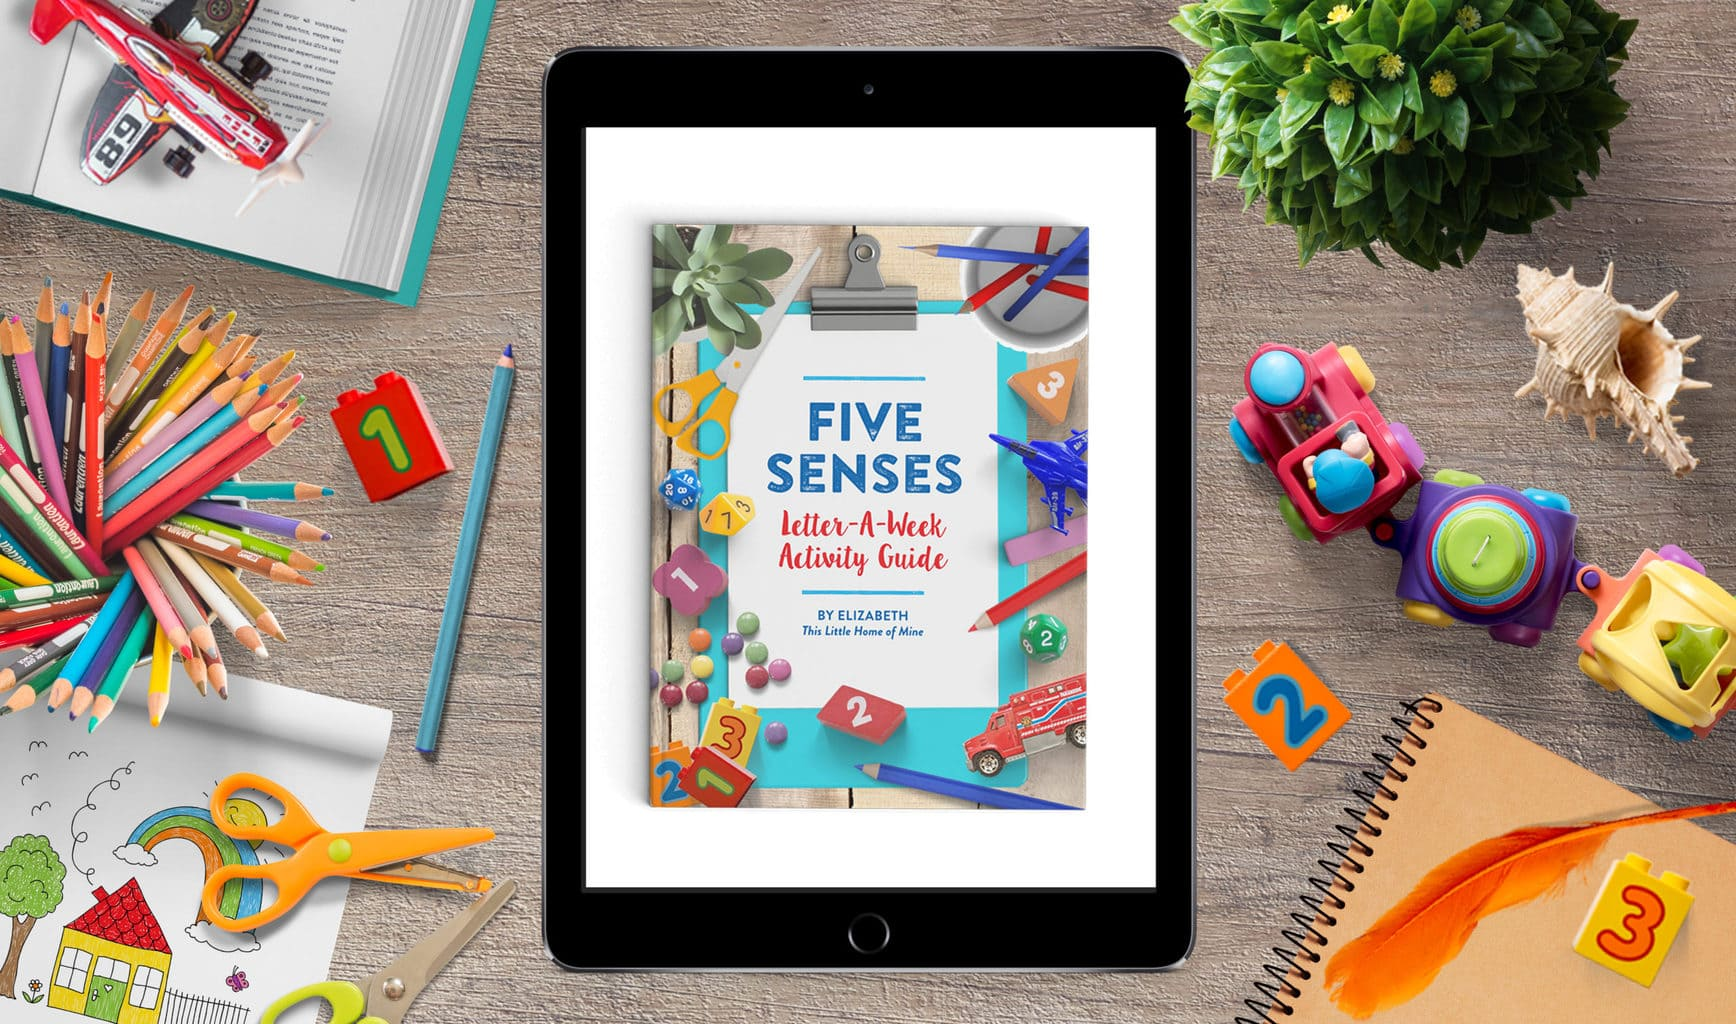 Five Senses Activity Guide for Letter-a-Week by This Little Home of Mine